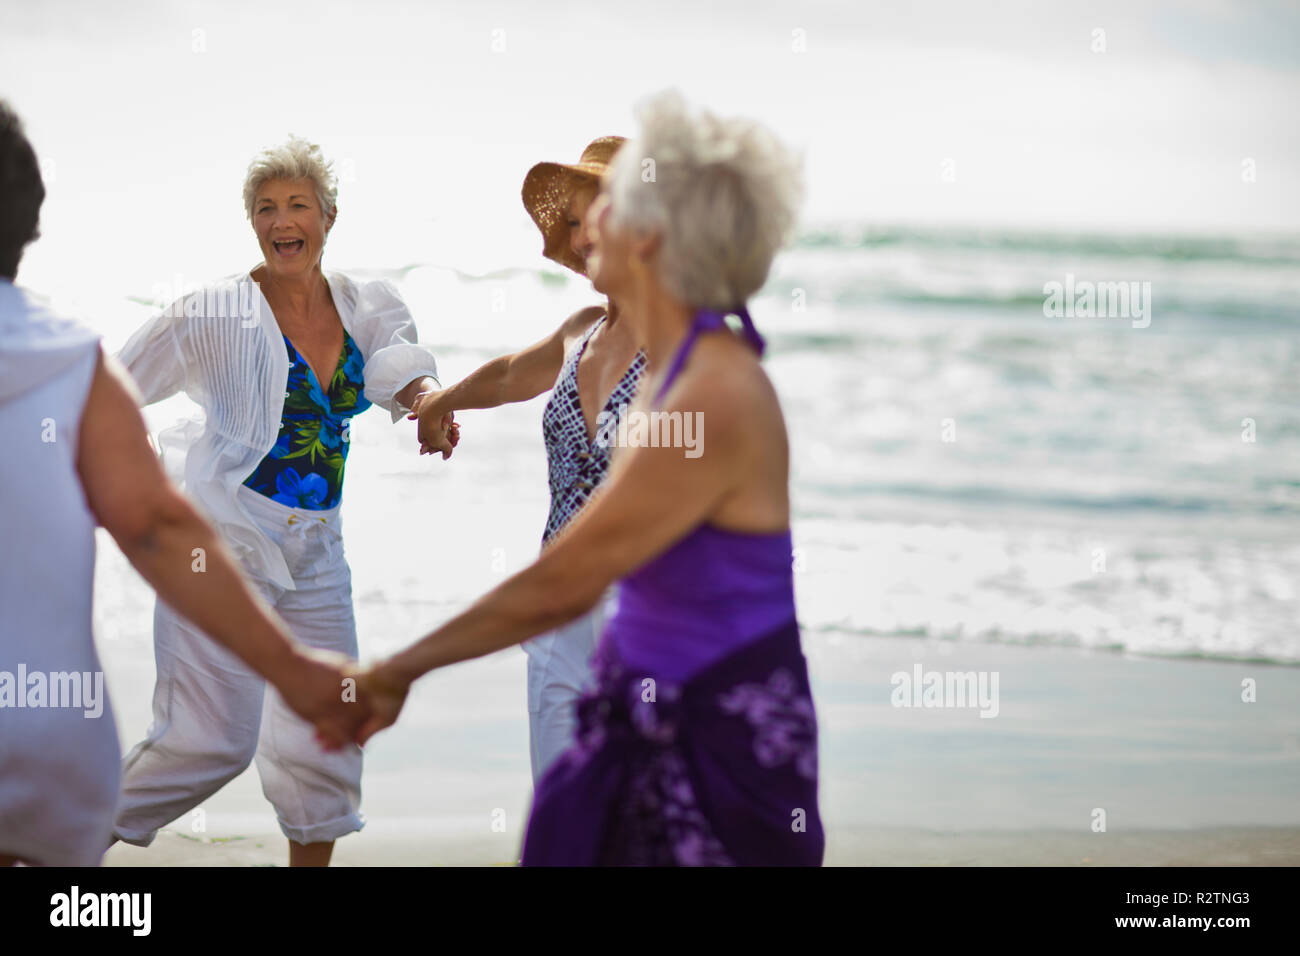 Happy mature friends enjoying a day at the beach. - Stock Image